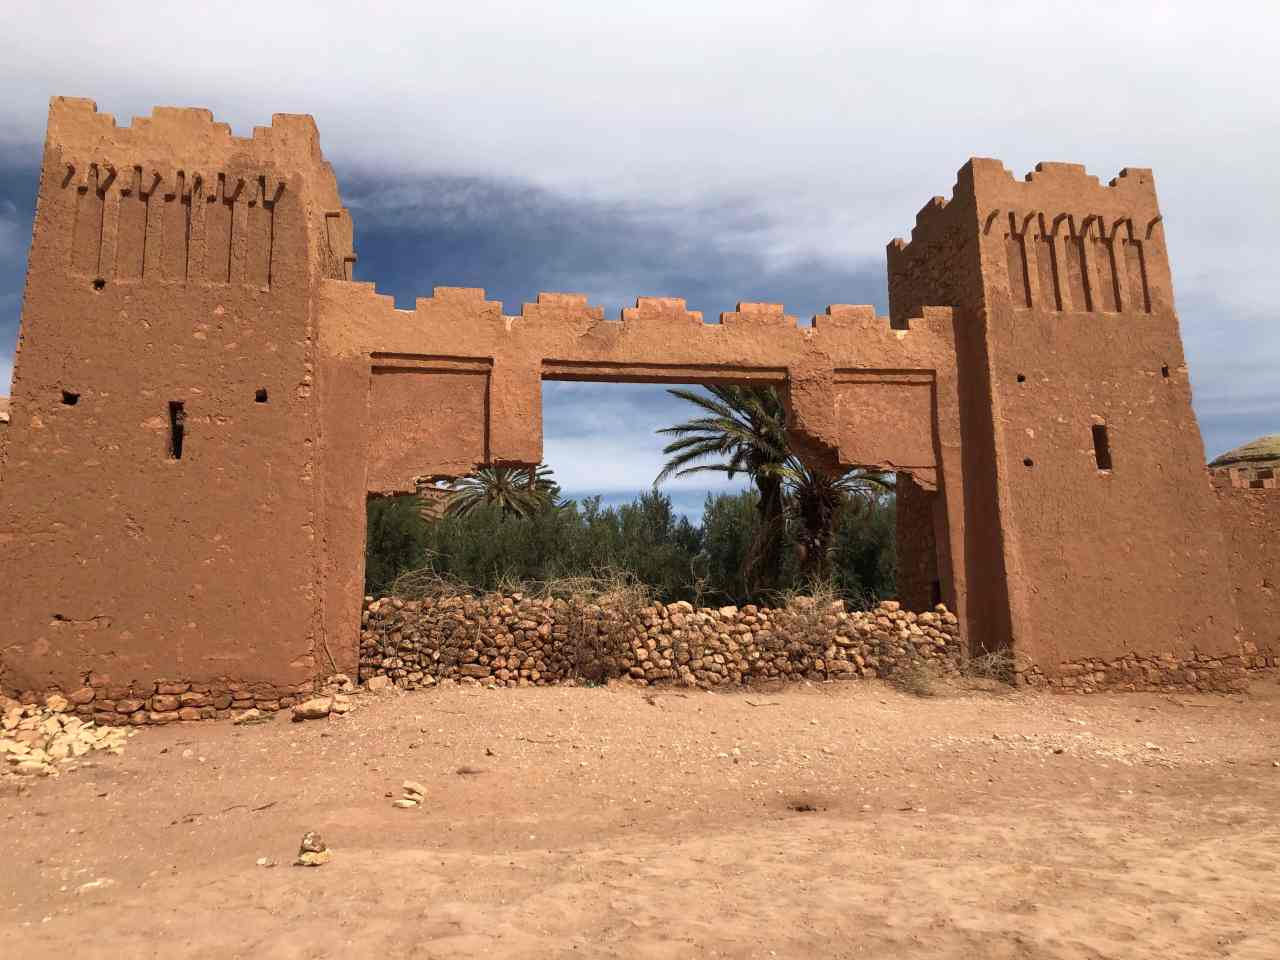 Fake city gate from Gladiator at Ait Benhaddou